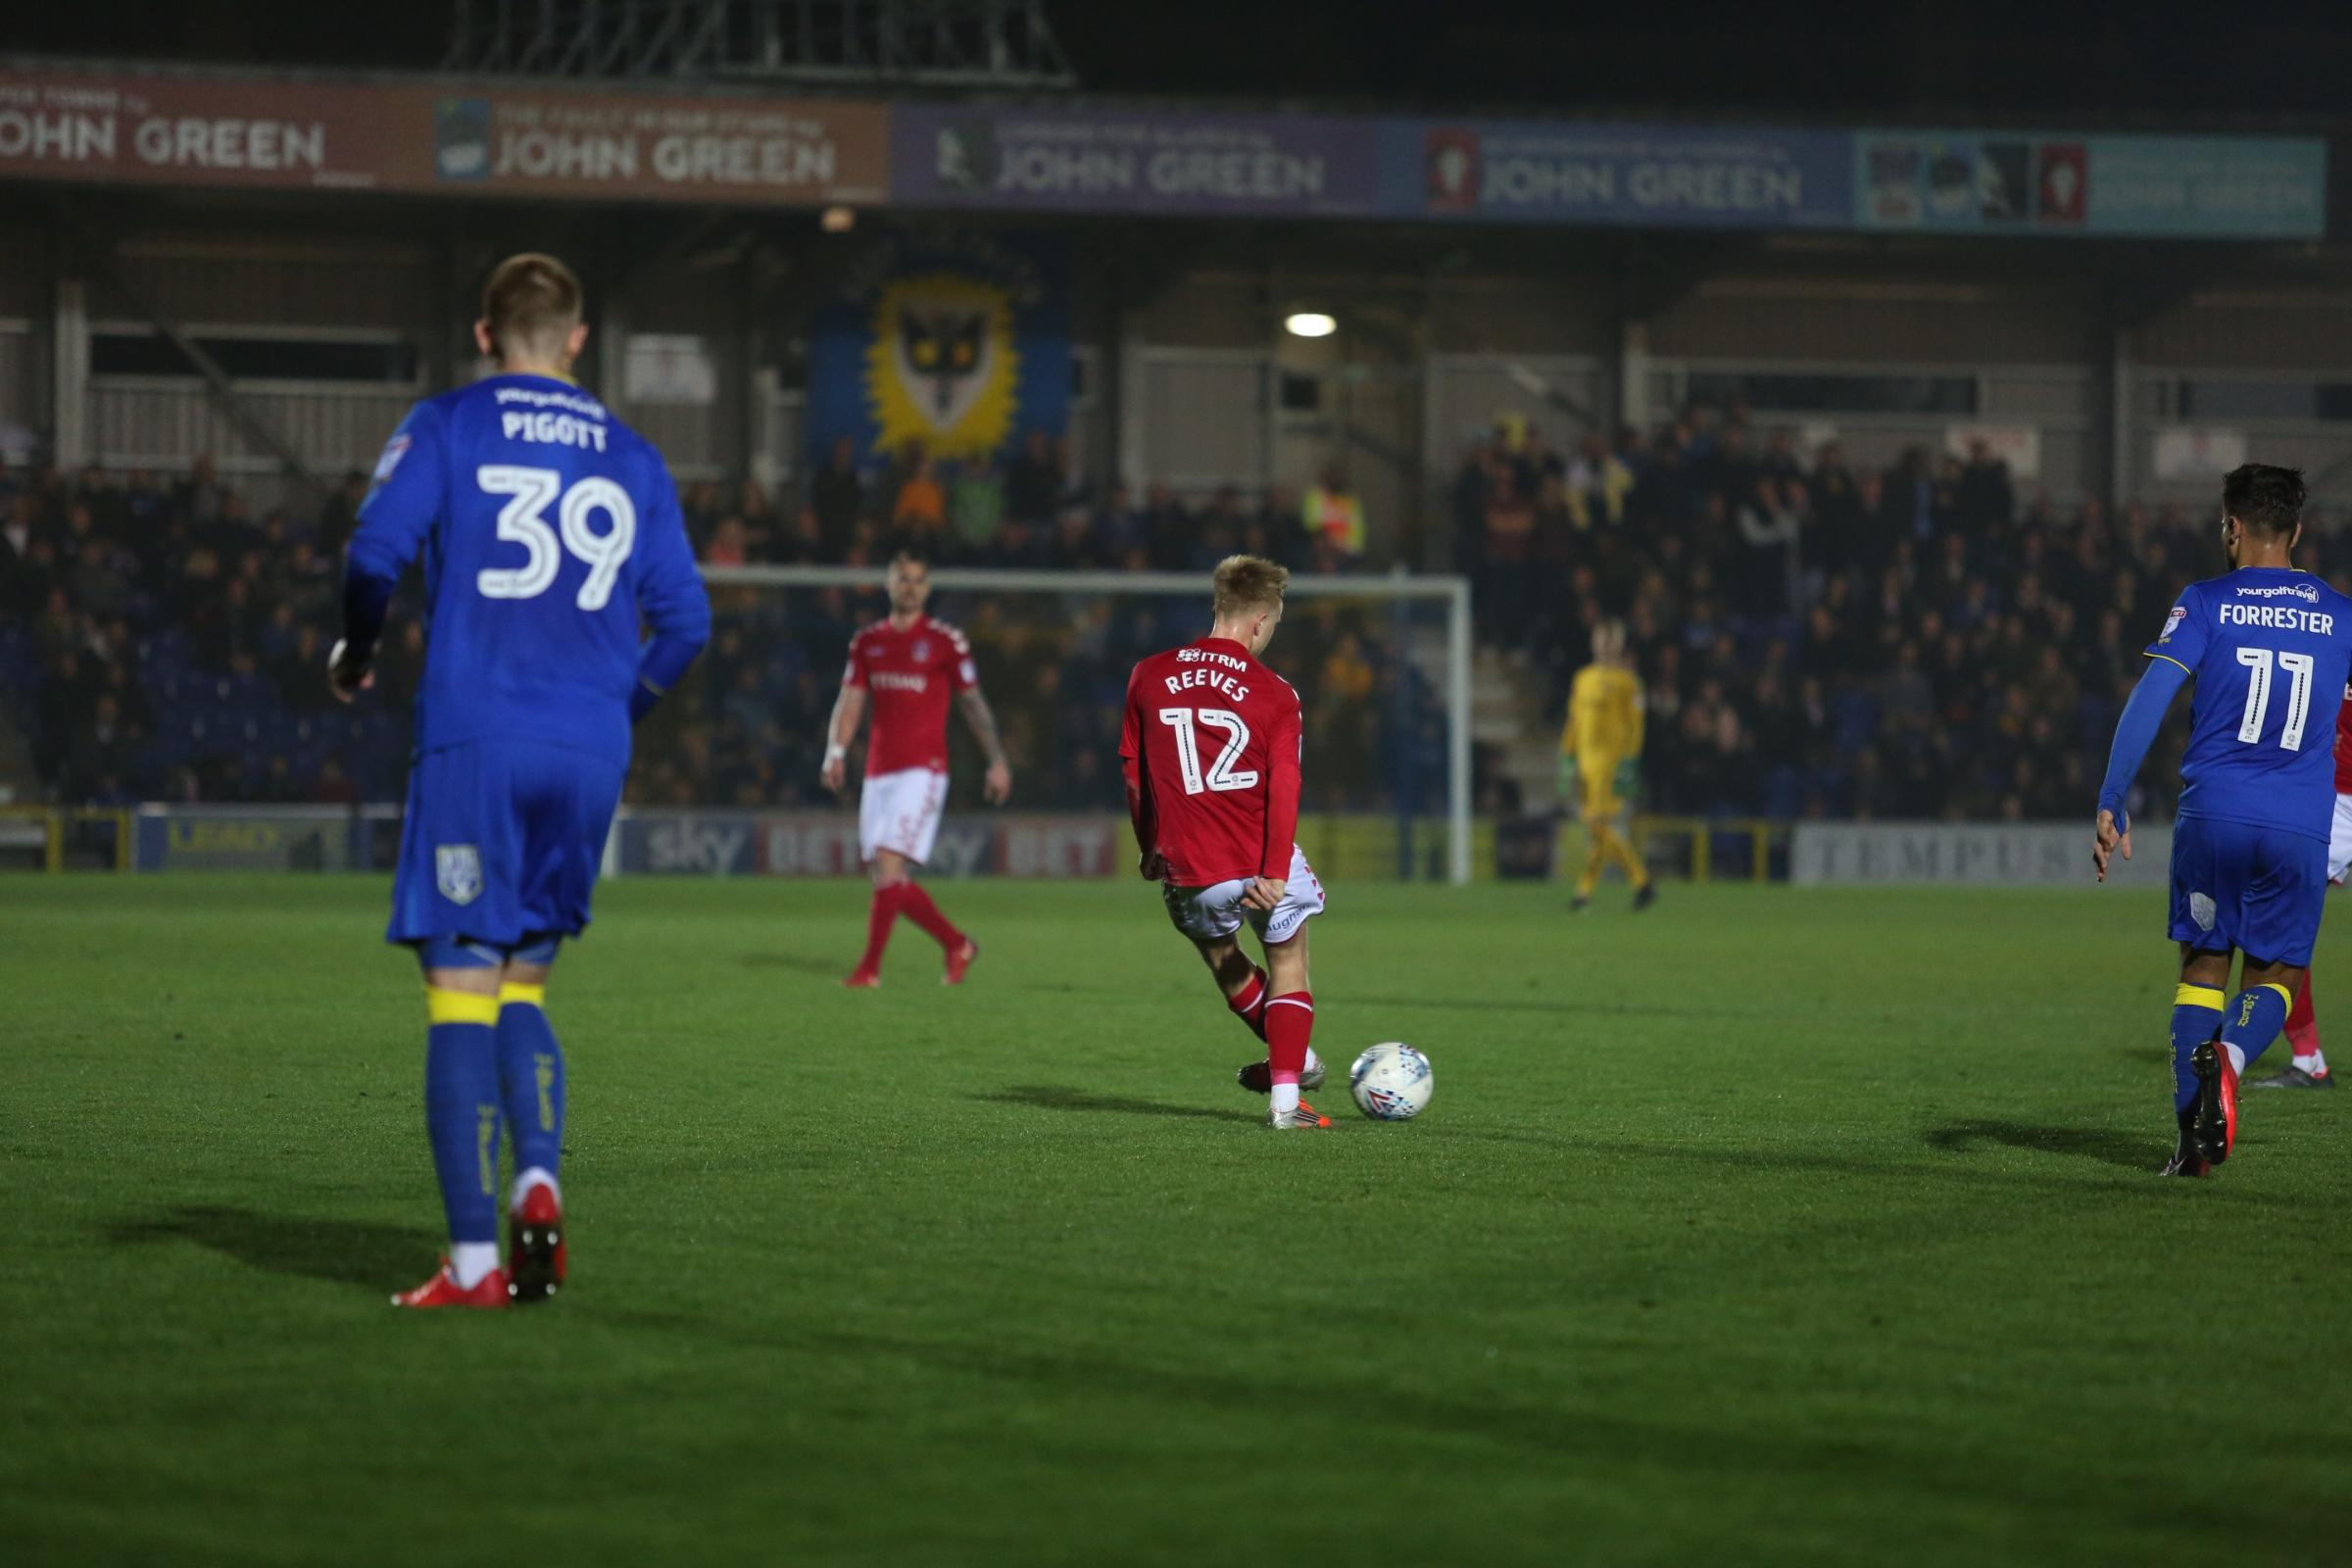 AFC Wimbledon striker Joe Pigott looks on after a Ben Reeves pass | Picture: Tom West Photography